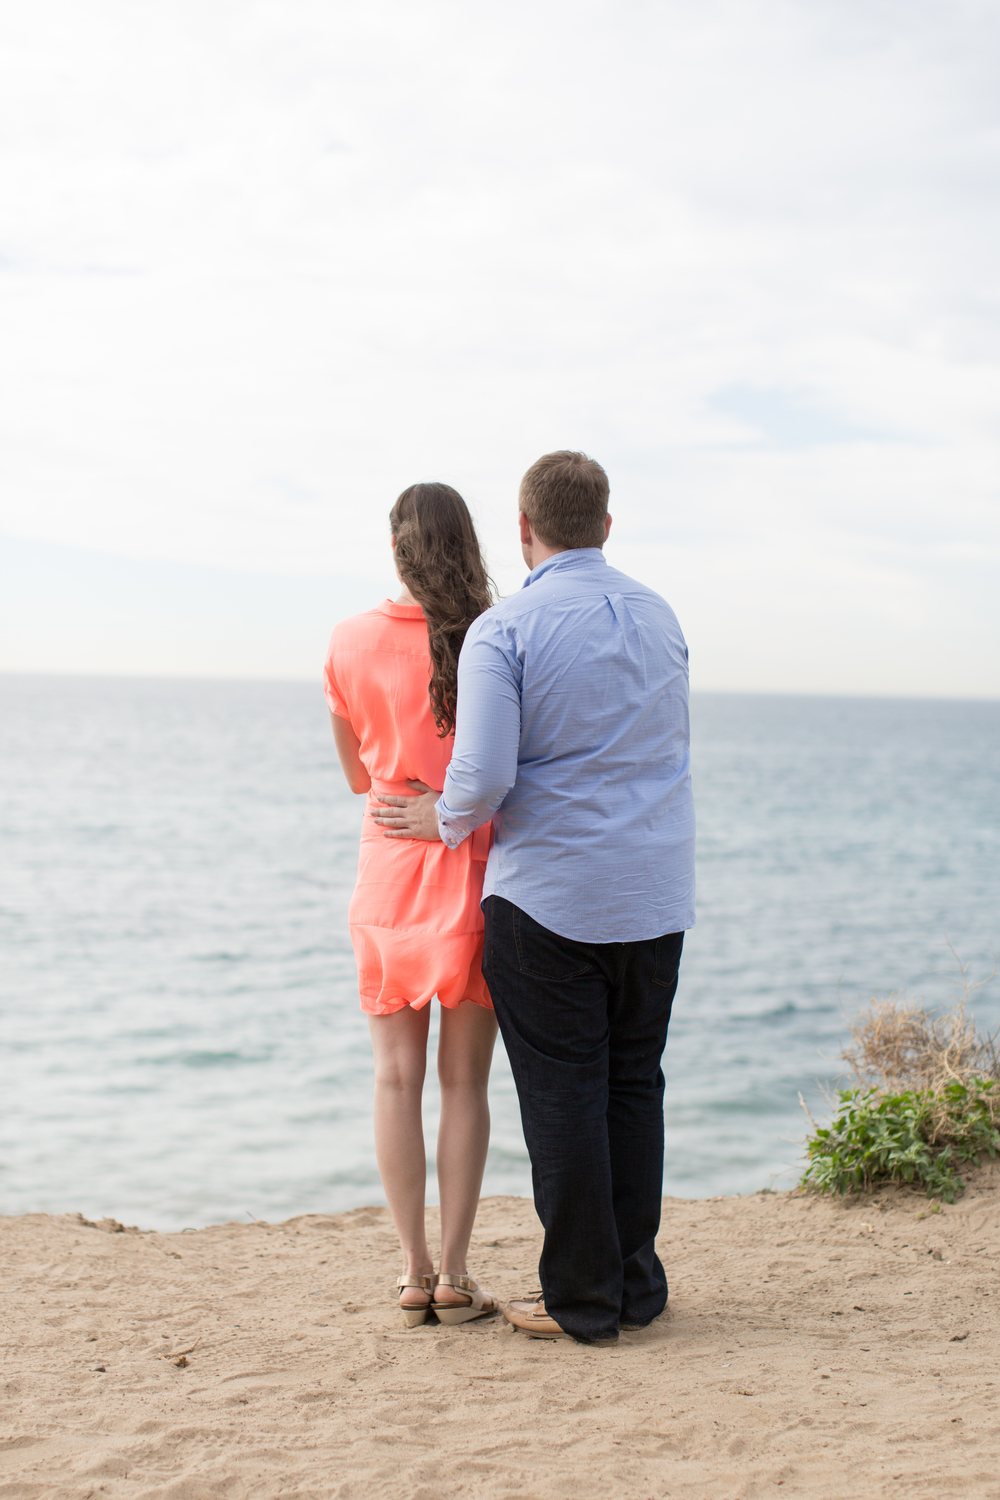 CourtneyPaigePhotography_Engagement_Hennigan-41.jpg